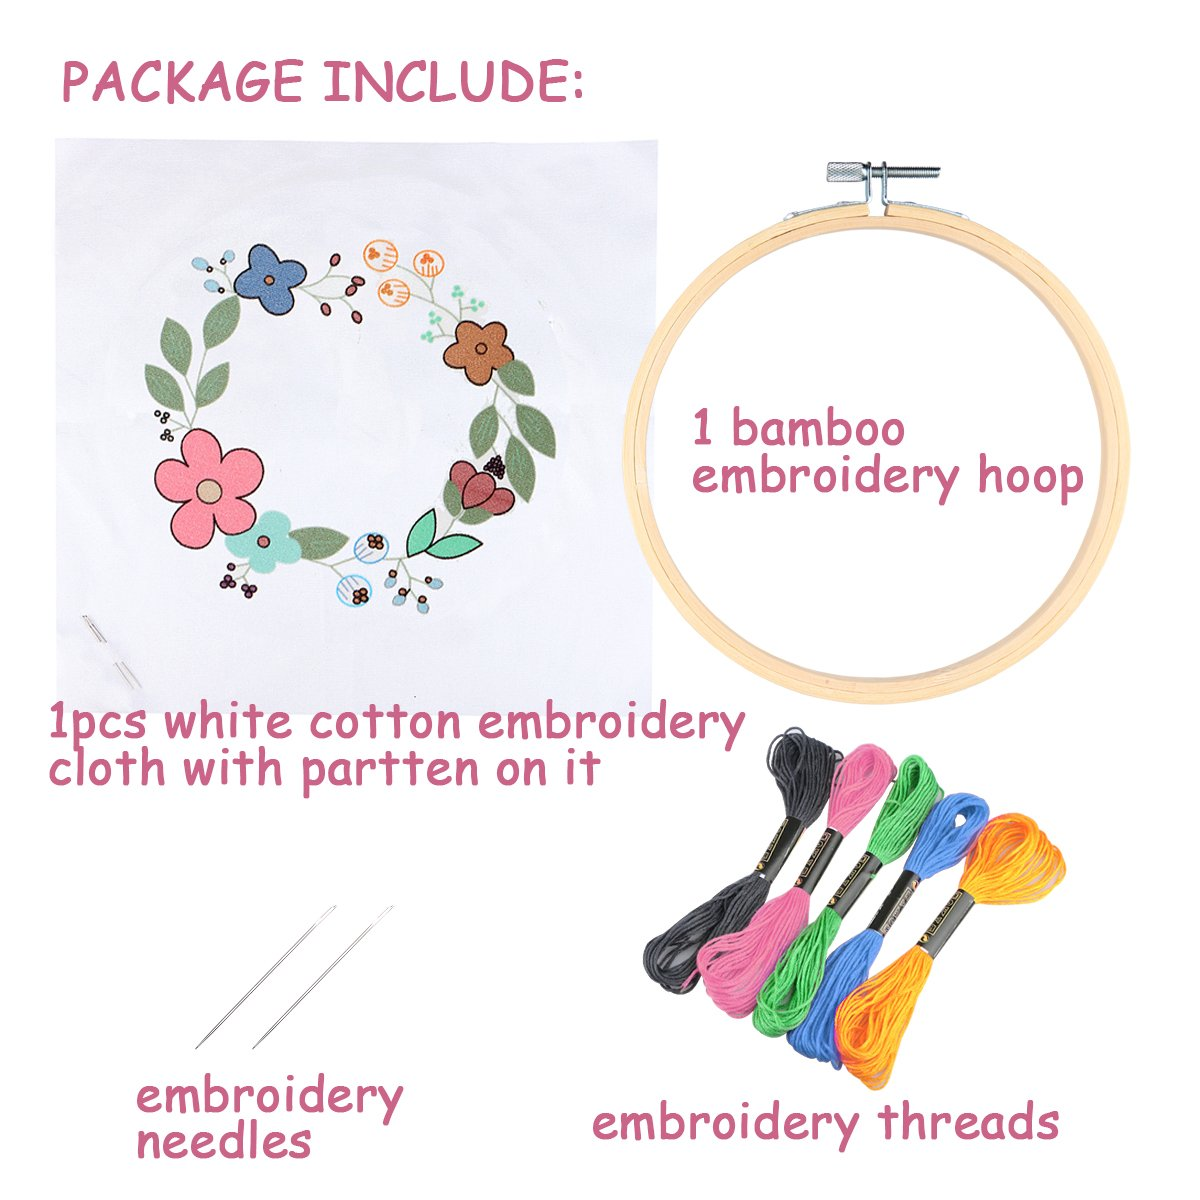 Cross Stitch Kit Including Embroidery Cloth with Color Pattern Color Threads Bamboo Embroidery Hoop and Tools Kit Dark Cactus Unime Full Range of Embroidery Starter Kit with Partten